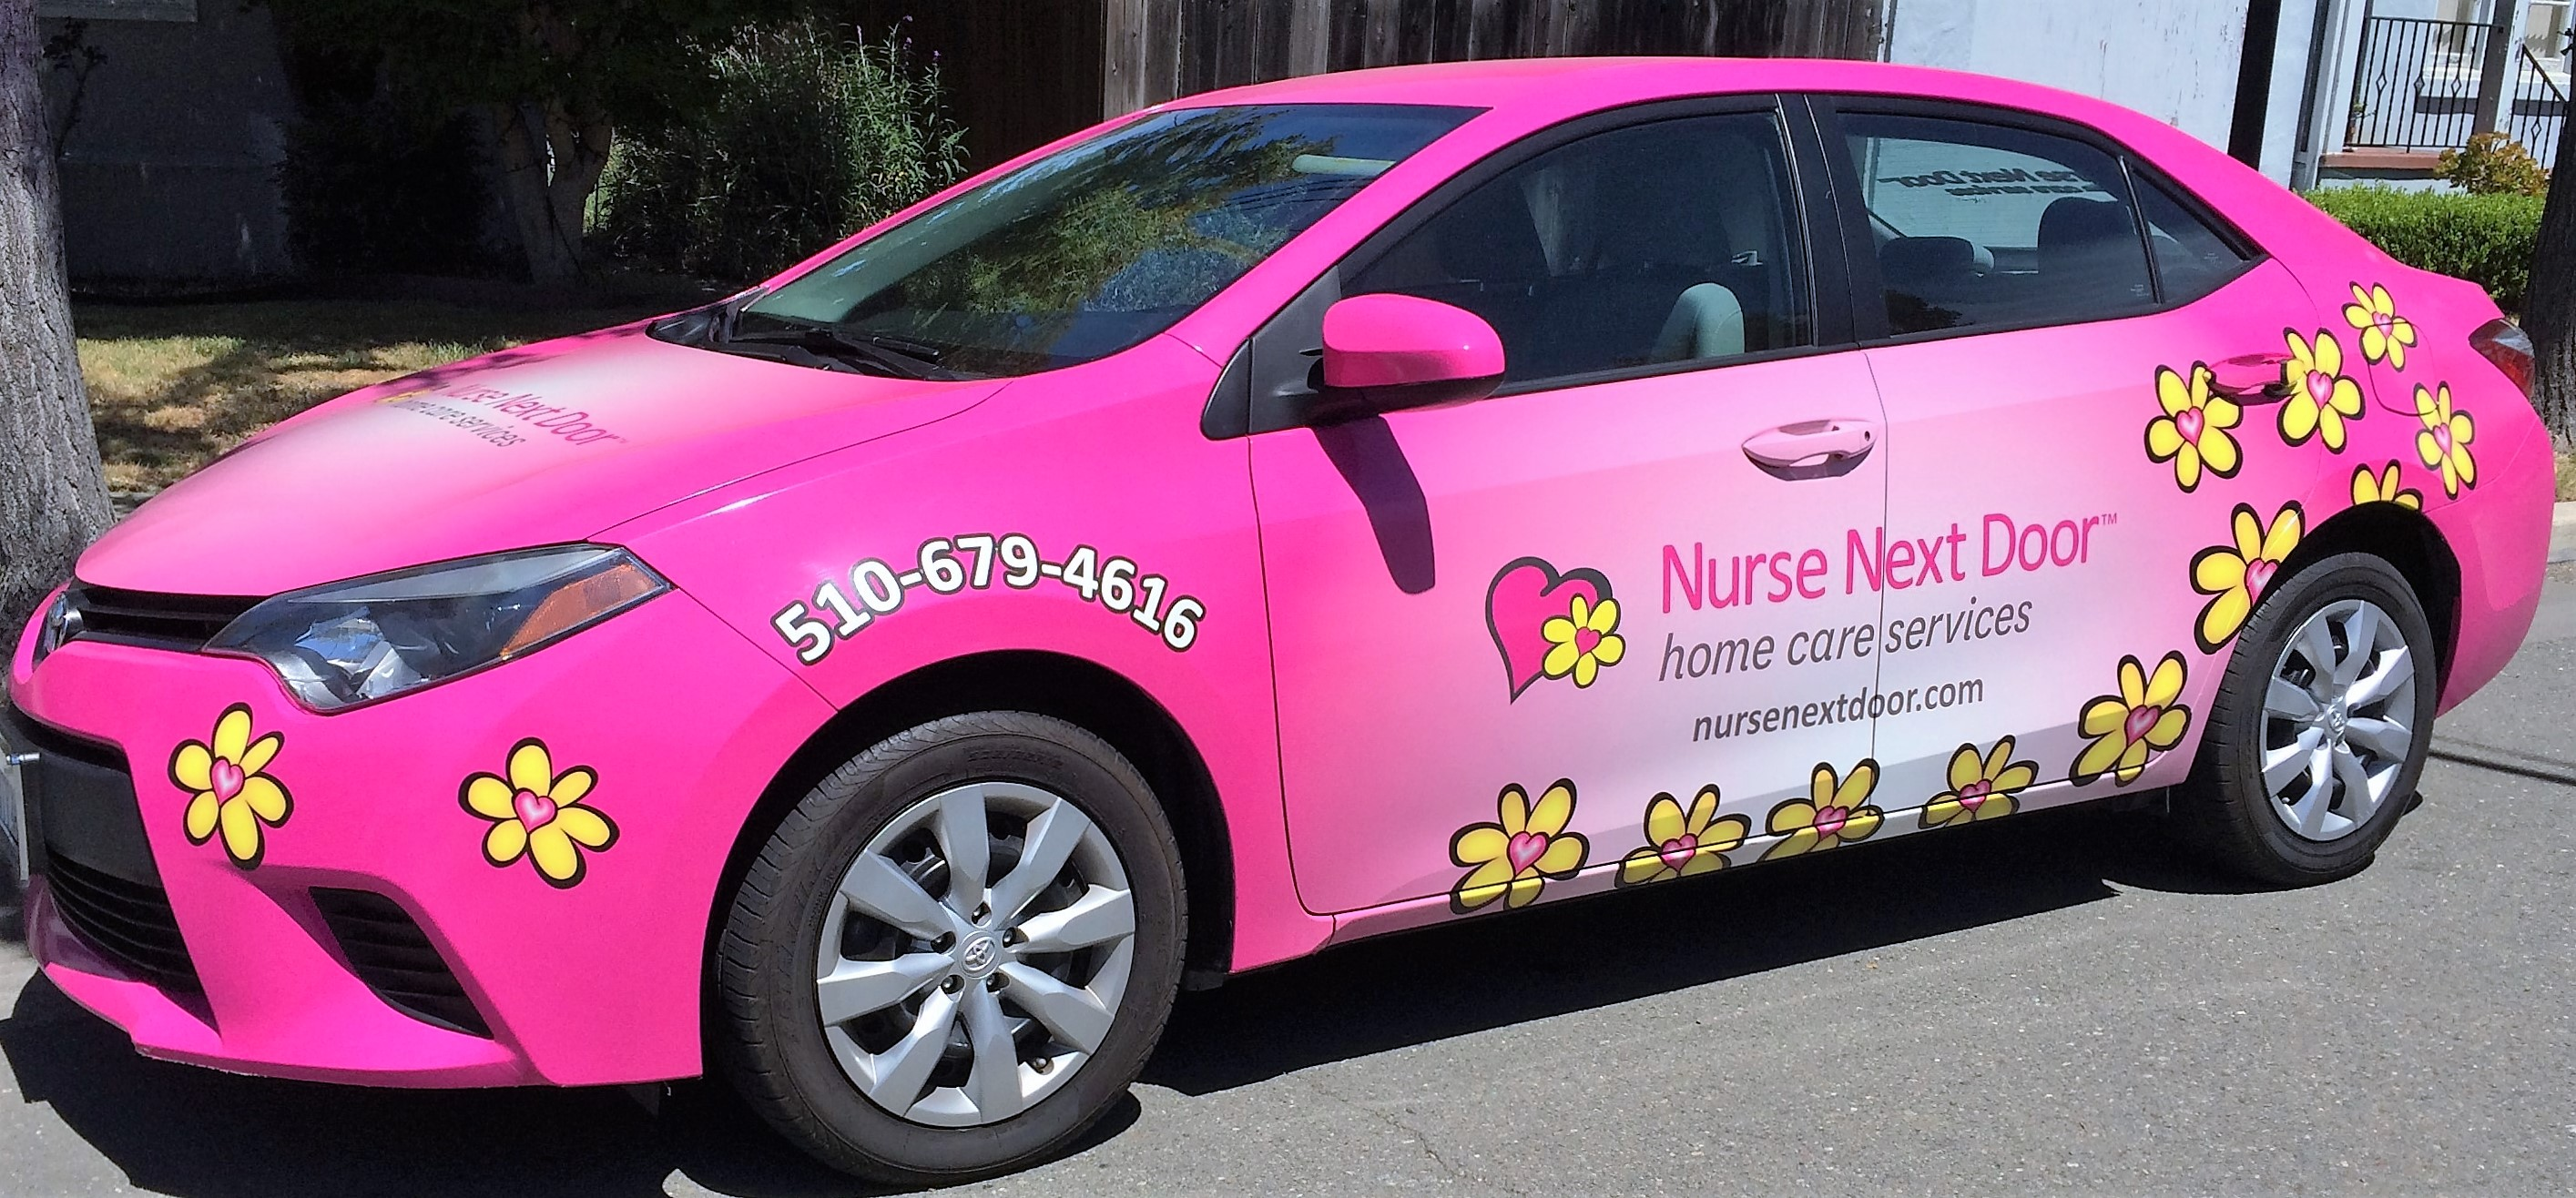 Nurse Next Door - Oakland, CA